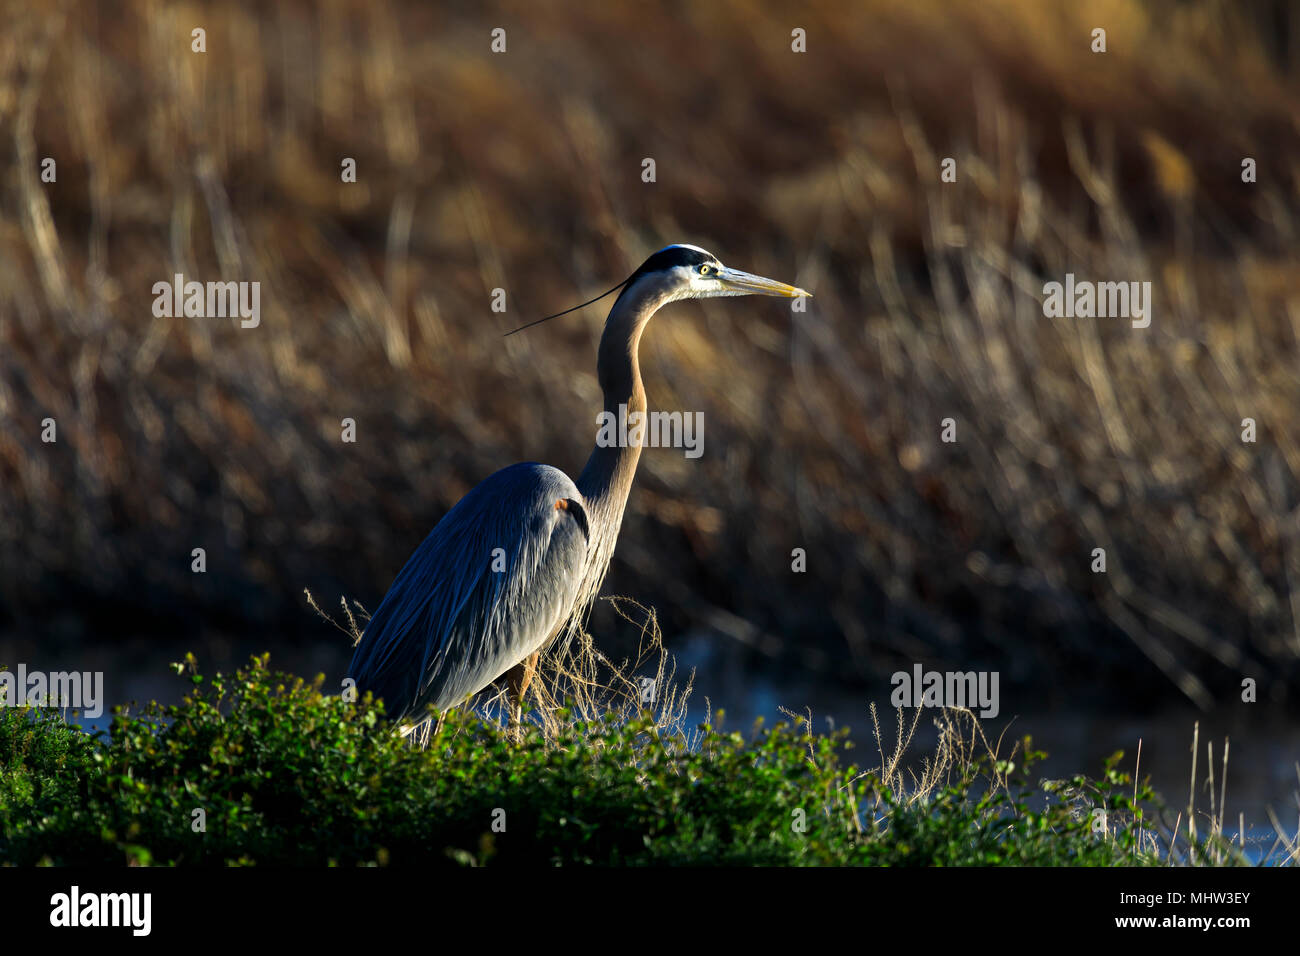 In this shot a Great Blue Heron  (Ardea herodias) at the Bear River Migratory Bird Refuge stands on the bank of the Bear River and waits for a fish. - Stock Image